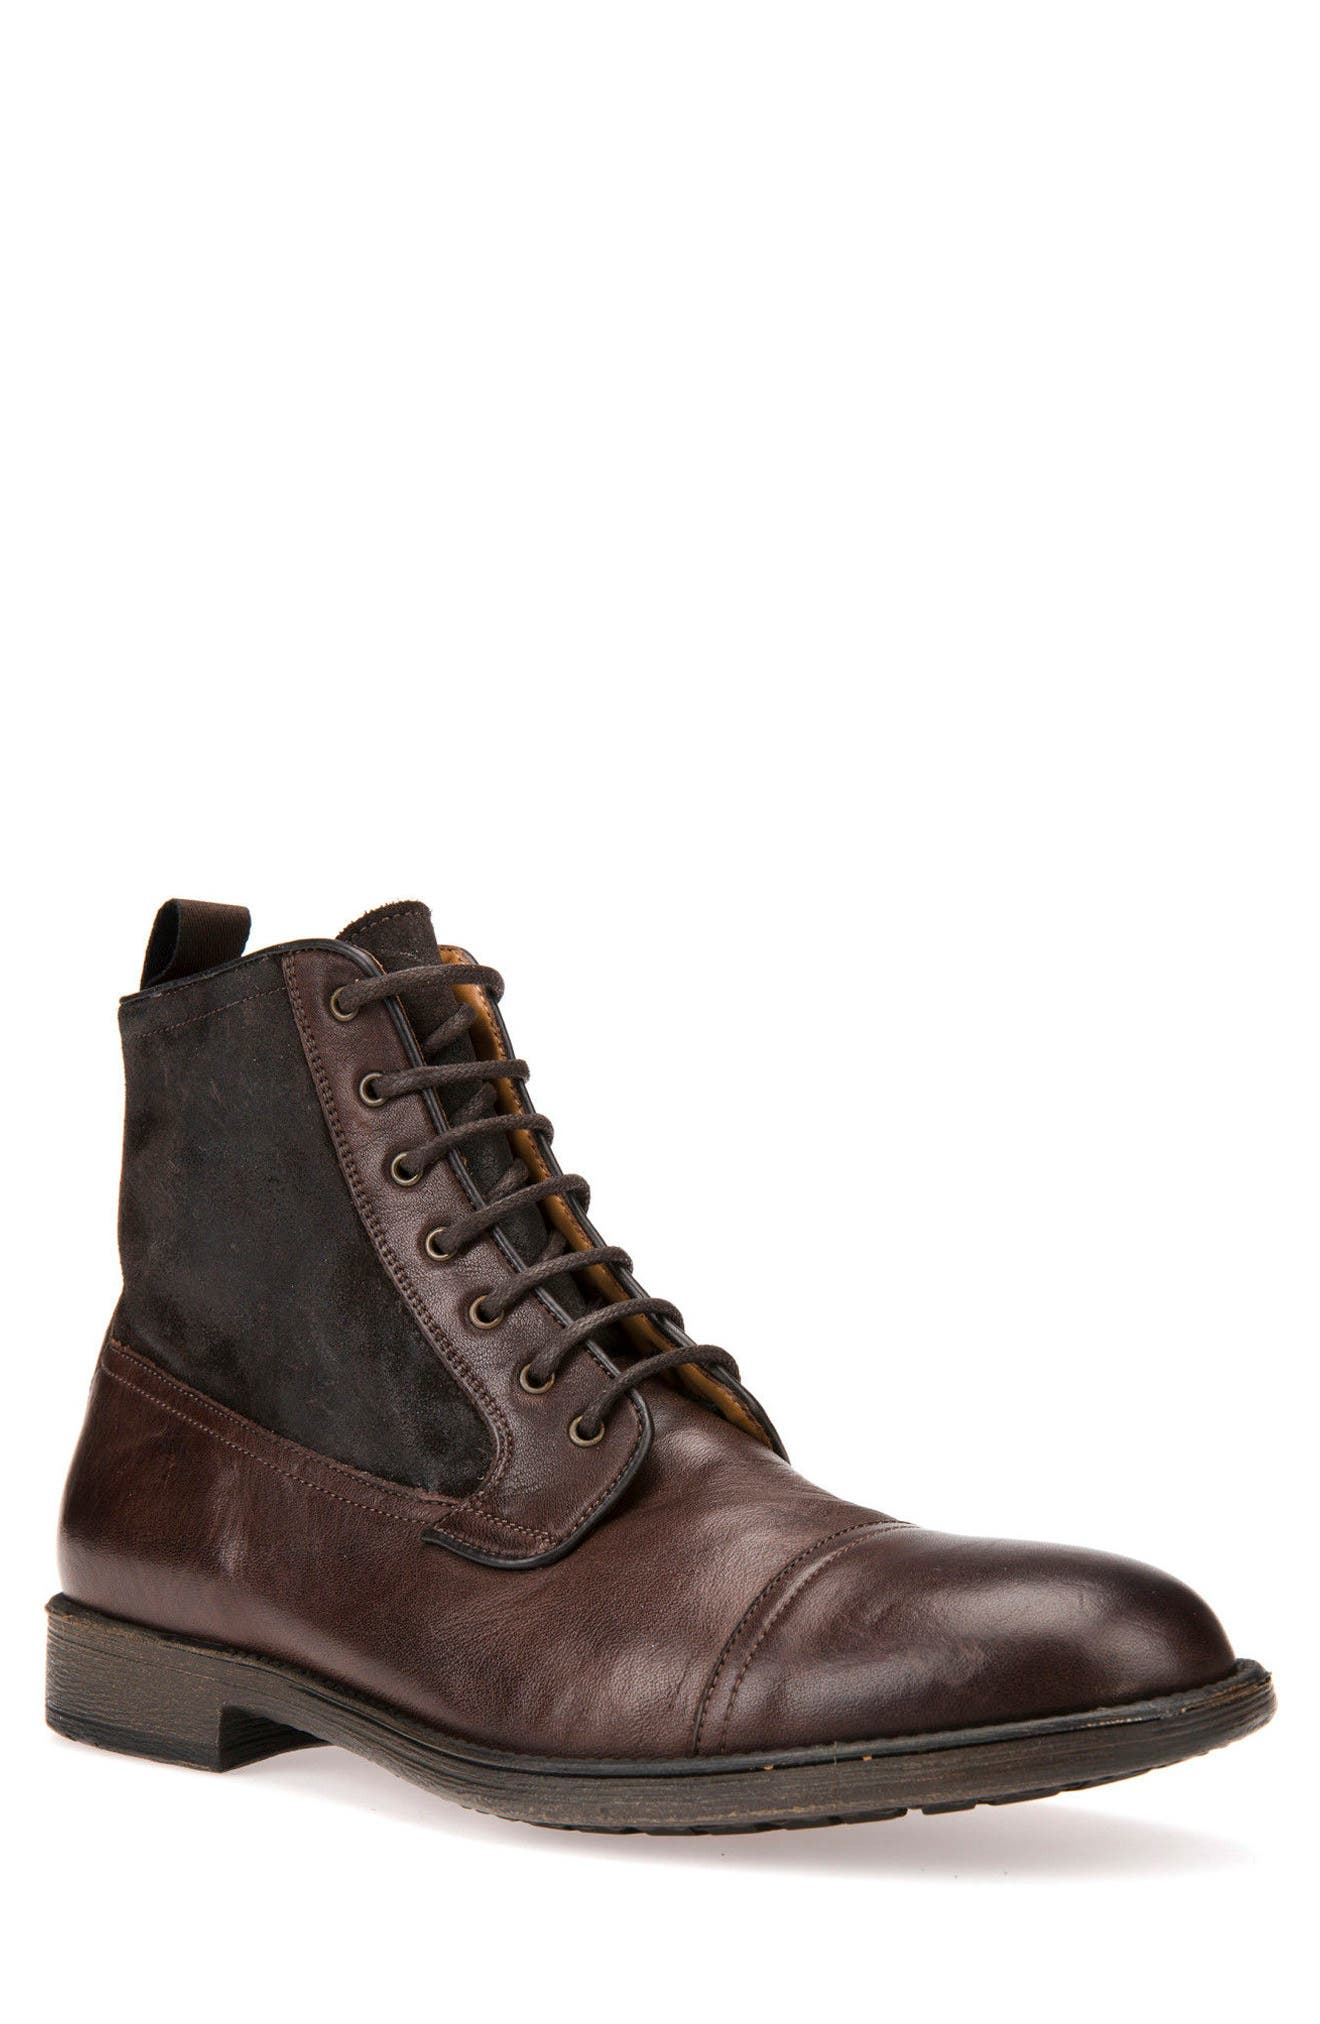 Alternate Image 1 Selected - Geox Jaylon 12 Cap-Toe Boot (Men)